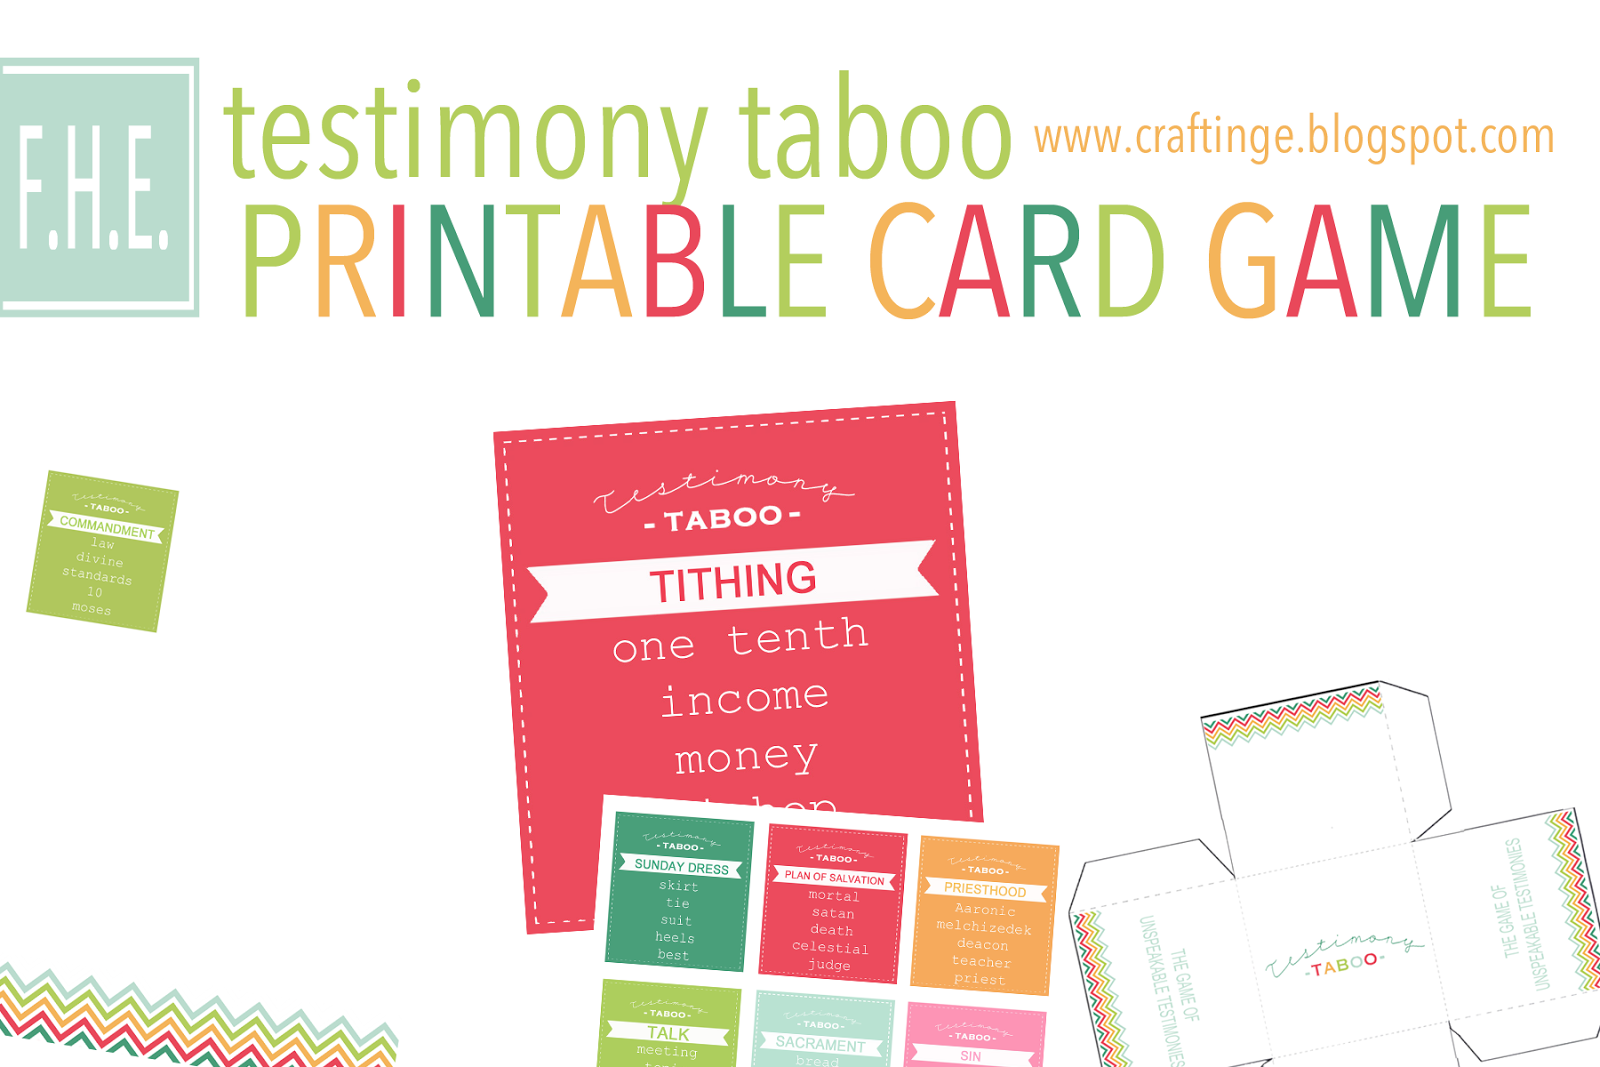 picture relating to Taboo Cards Printable known as Testimony Taboo (totally free printables!!) - CraftingeE